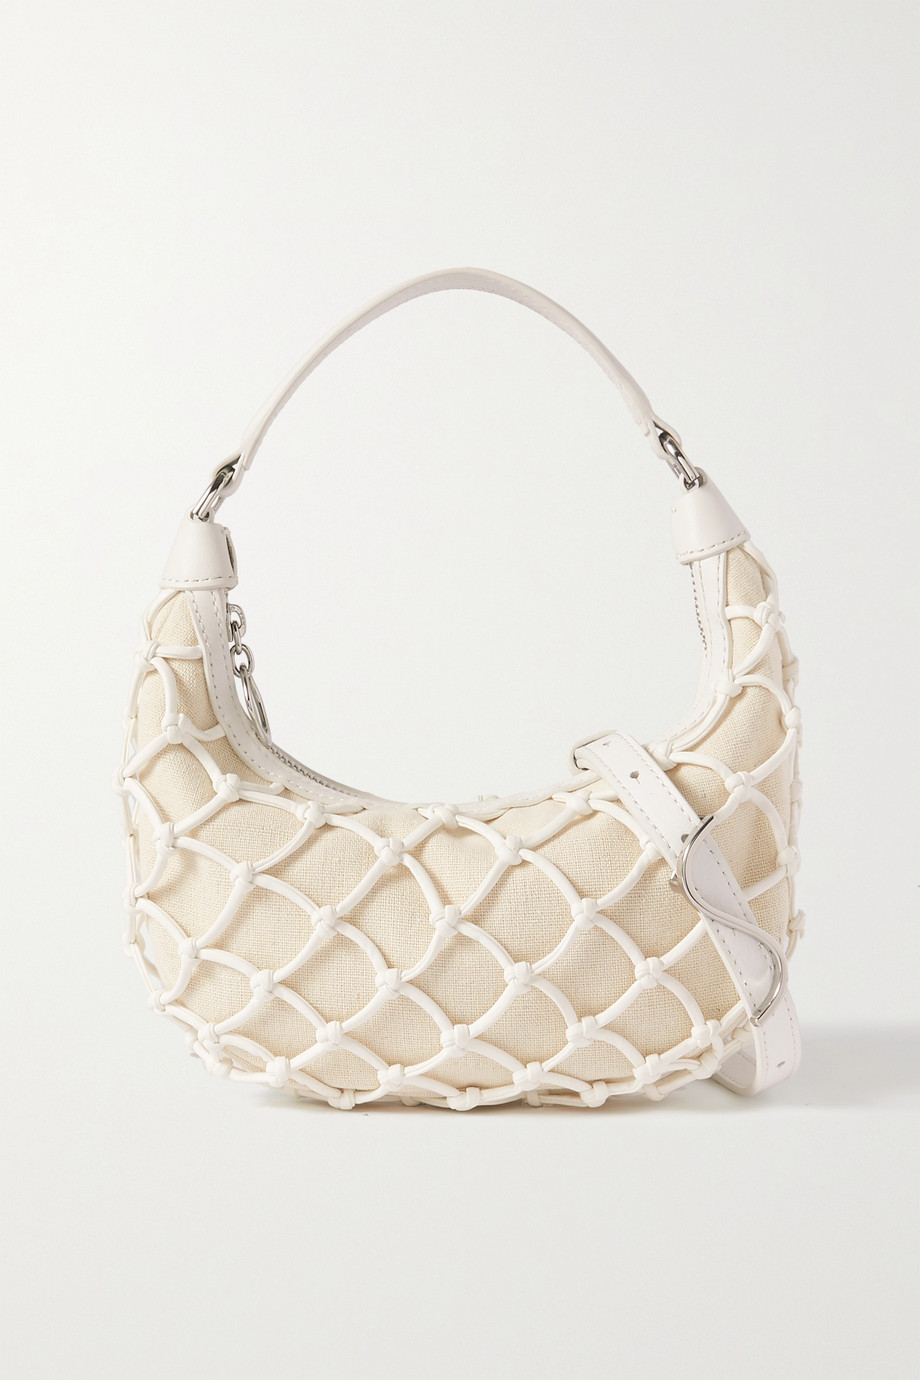 STAUD Luna mini macramé vegan leather and linen tote